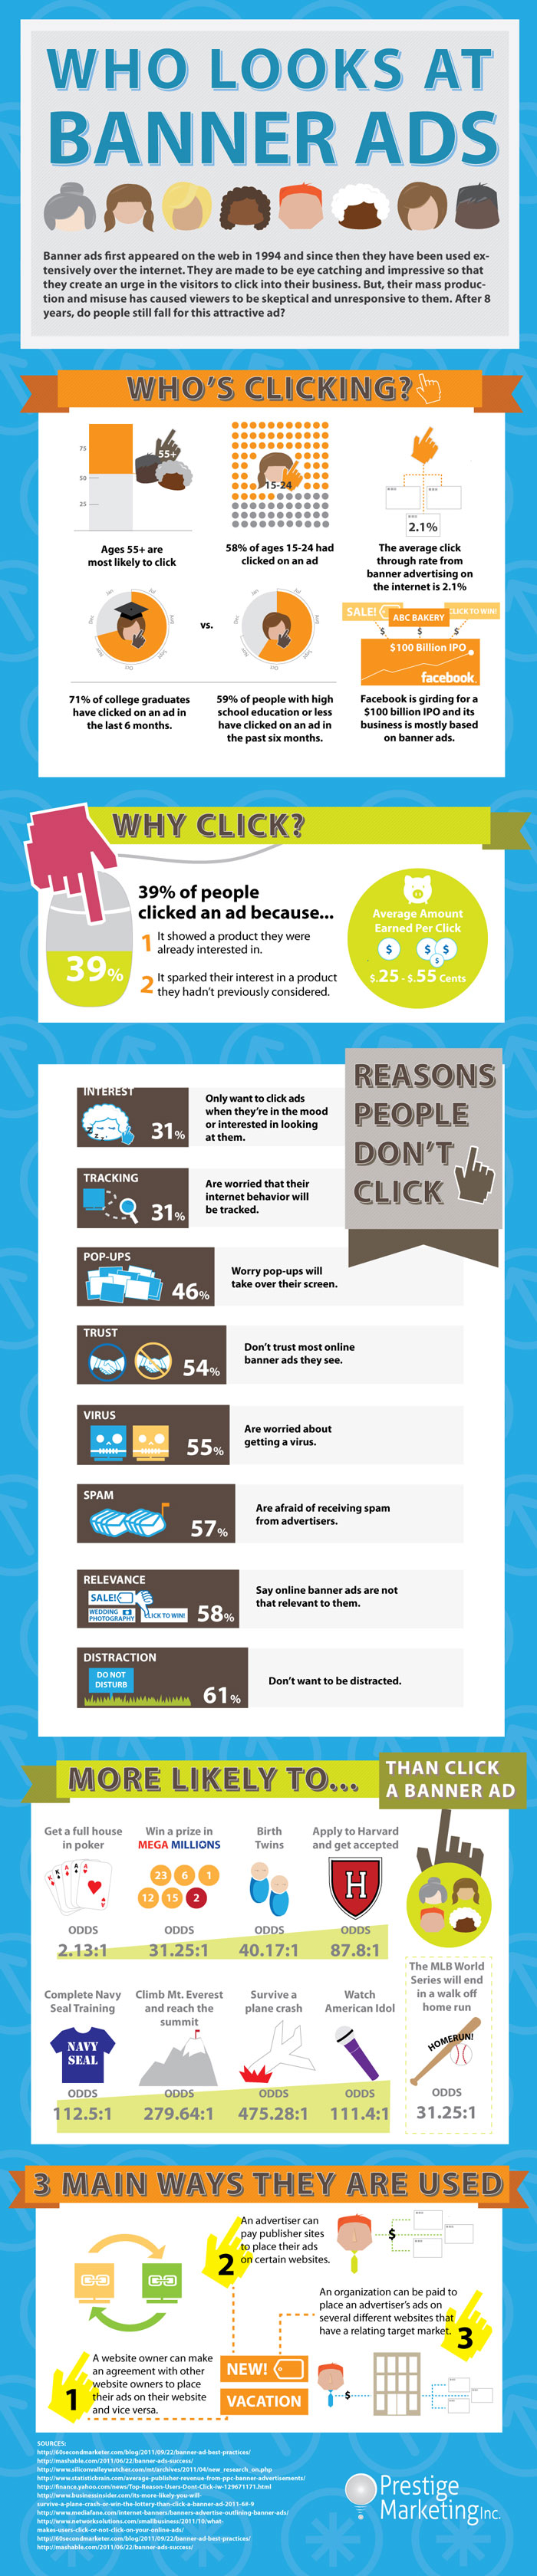 Effectiveness of Banner Ads 2012 Infographic